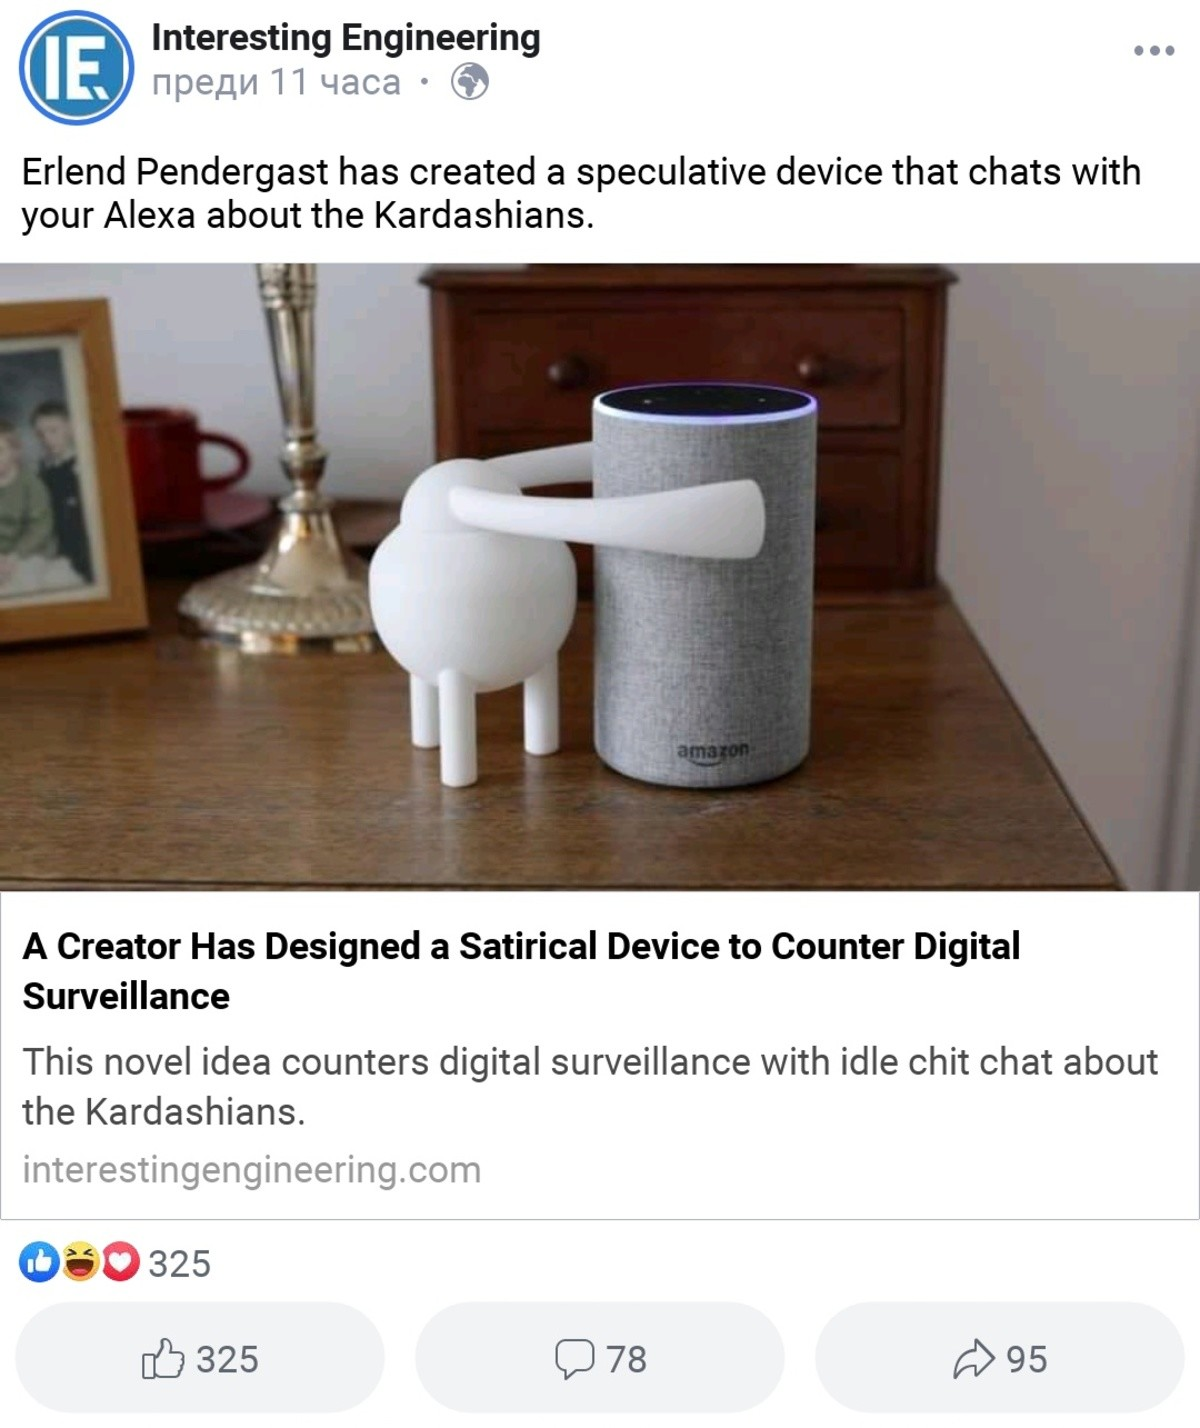 Modern problems require modern solutions. .. Here's a novel idea to counter digital surveillance: Don't put a listening device in your house.